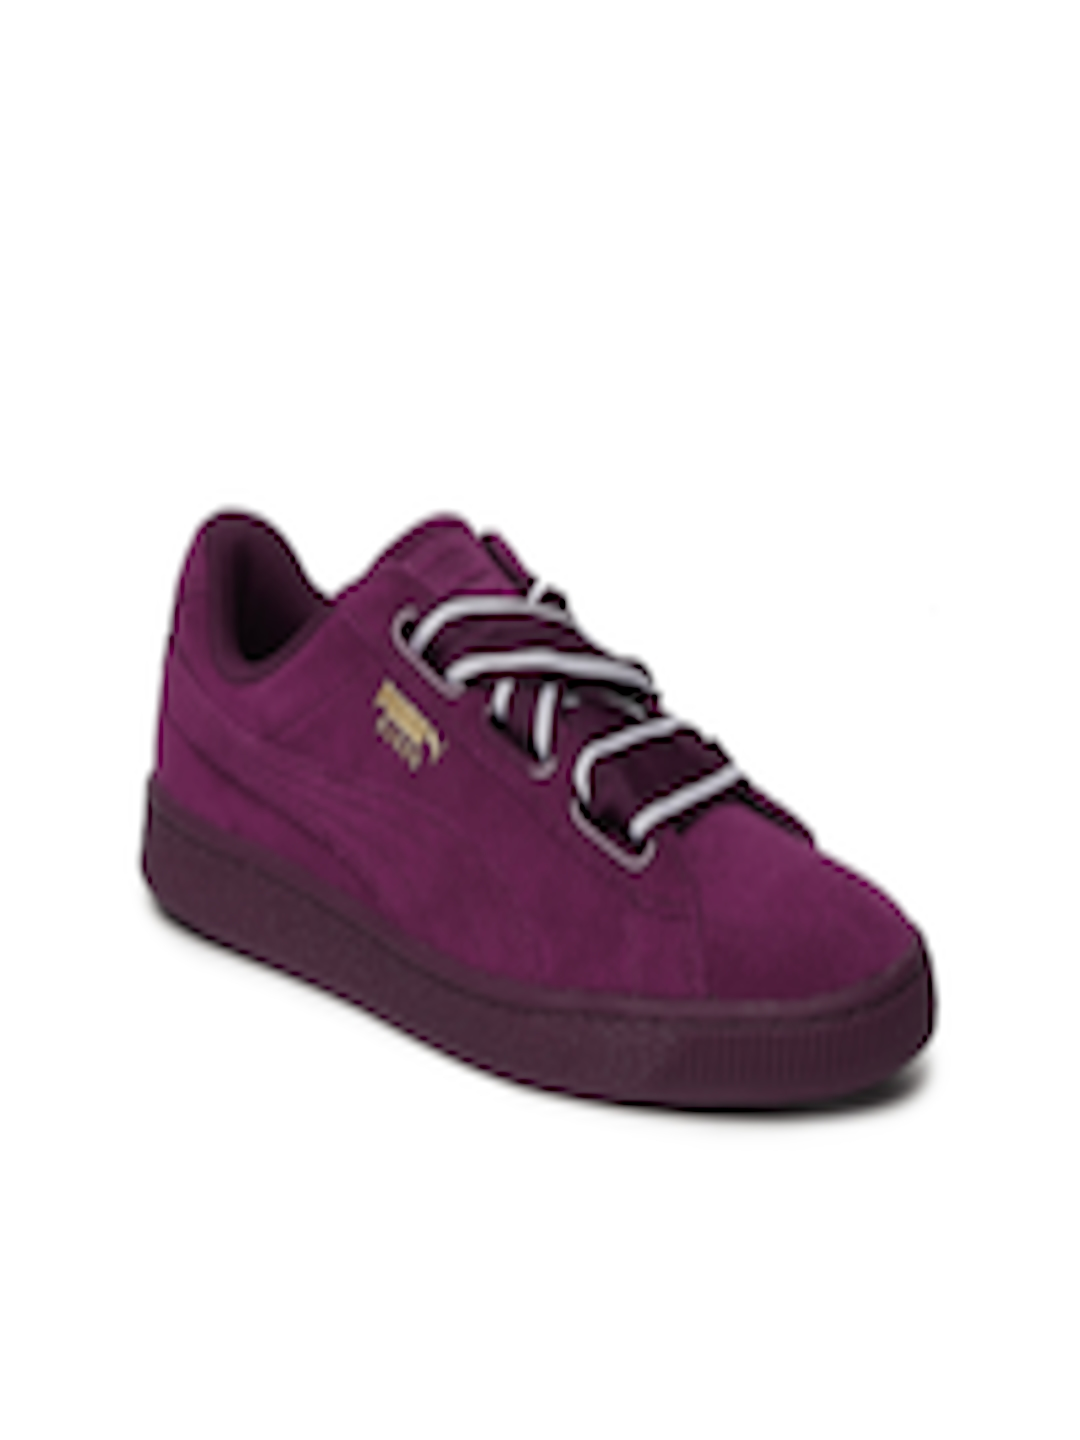 new arrival acea4 516aa Buy Puma Women Purple Suede Heart Satin II Sneakers - - Footwear for Women